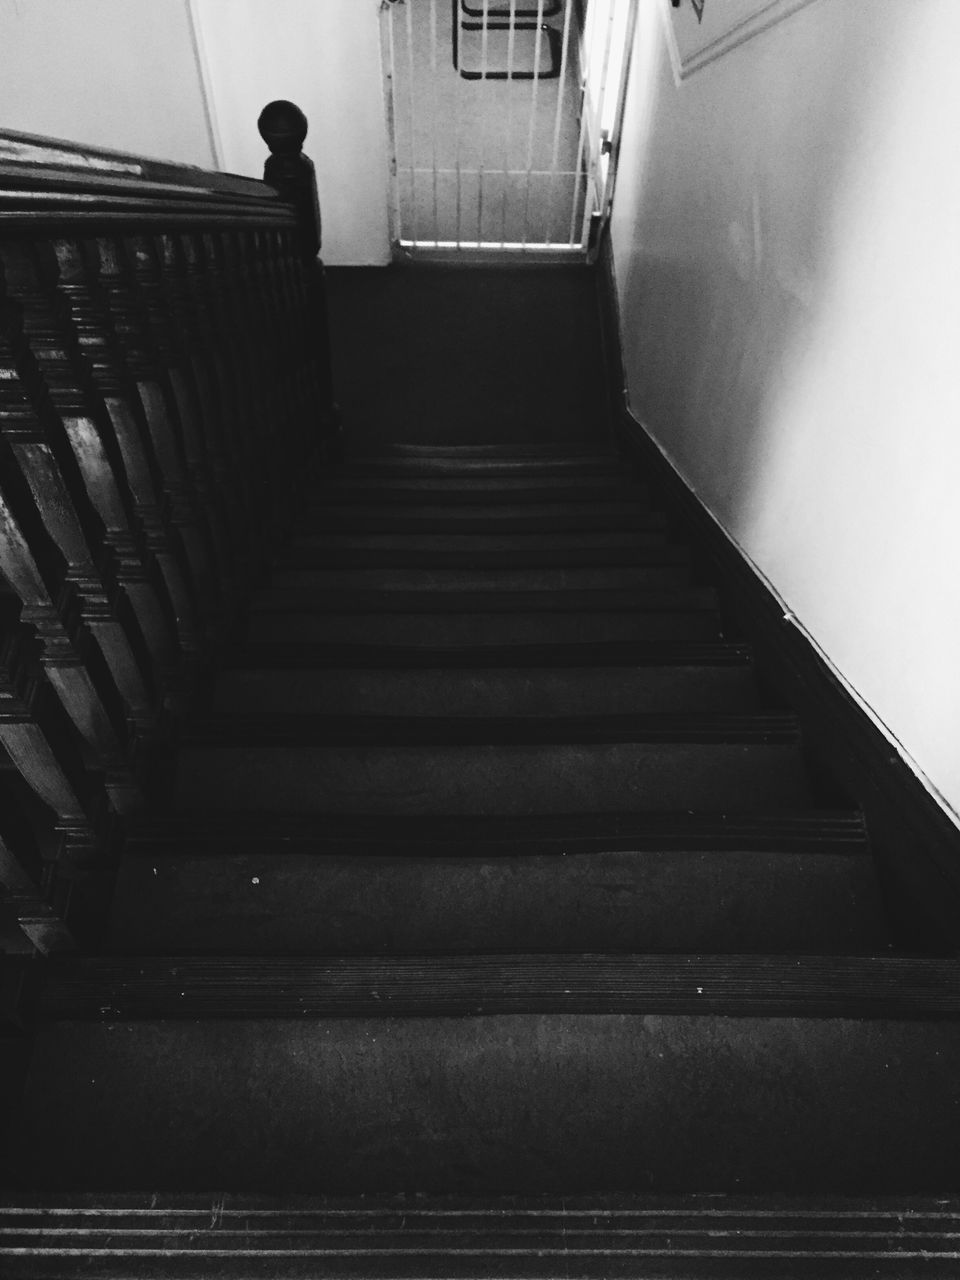 steps and staircases, steps, staircase, indoors, railing, the way forward, built structure, stairs, architecture, hand rail, no people, day